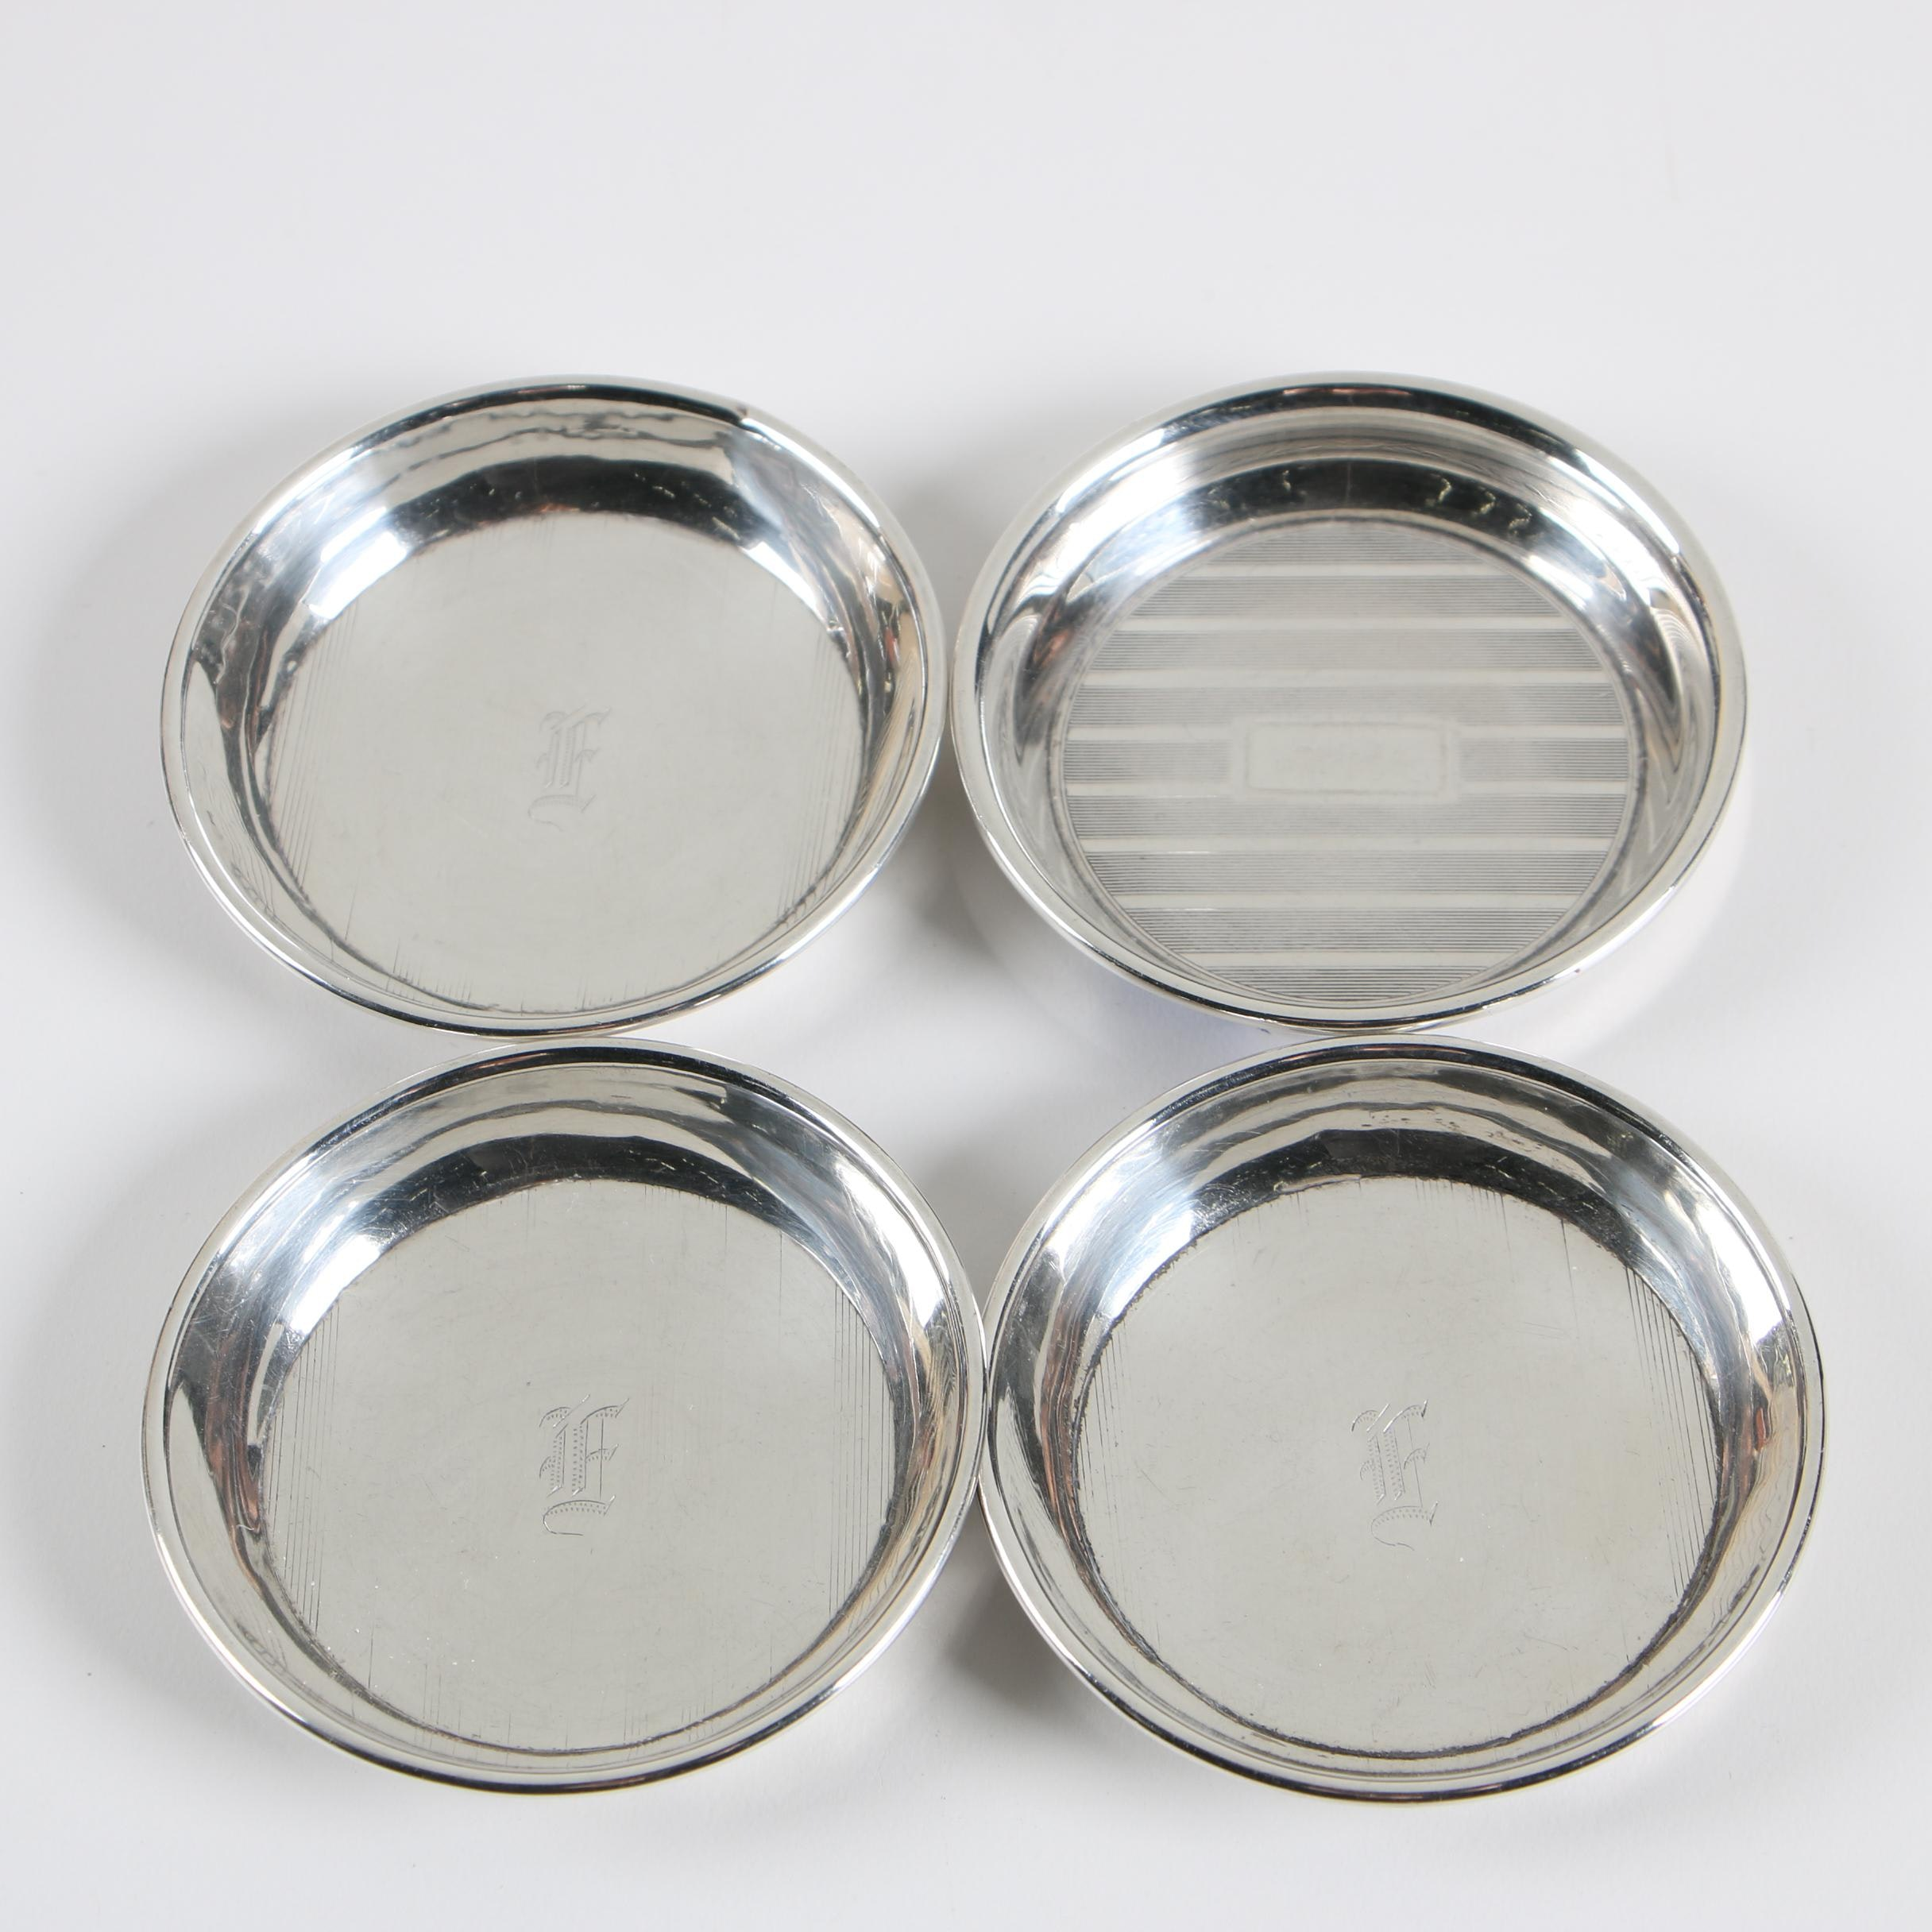 Webster Co. Sterling Silver Nut Dish with Other Sterling Nut Dishes, Mid-Century